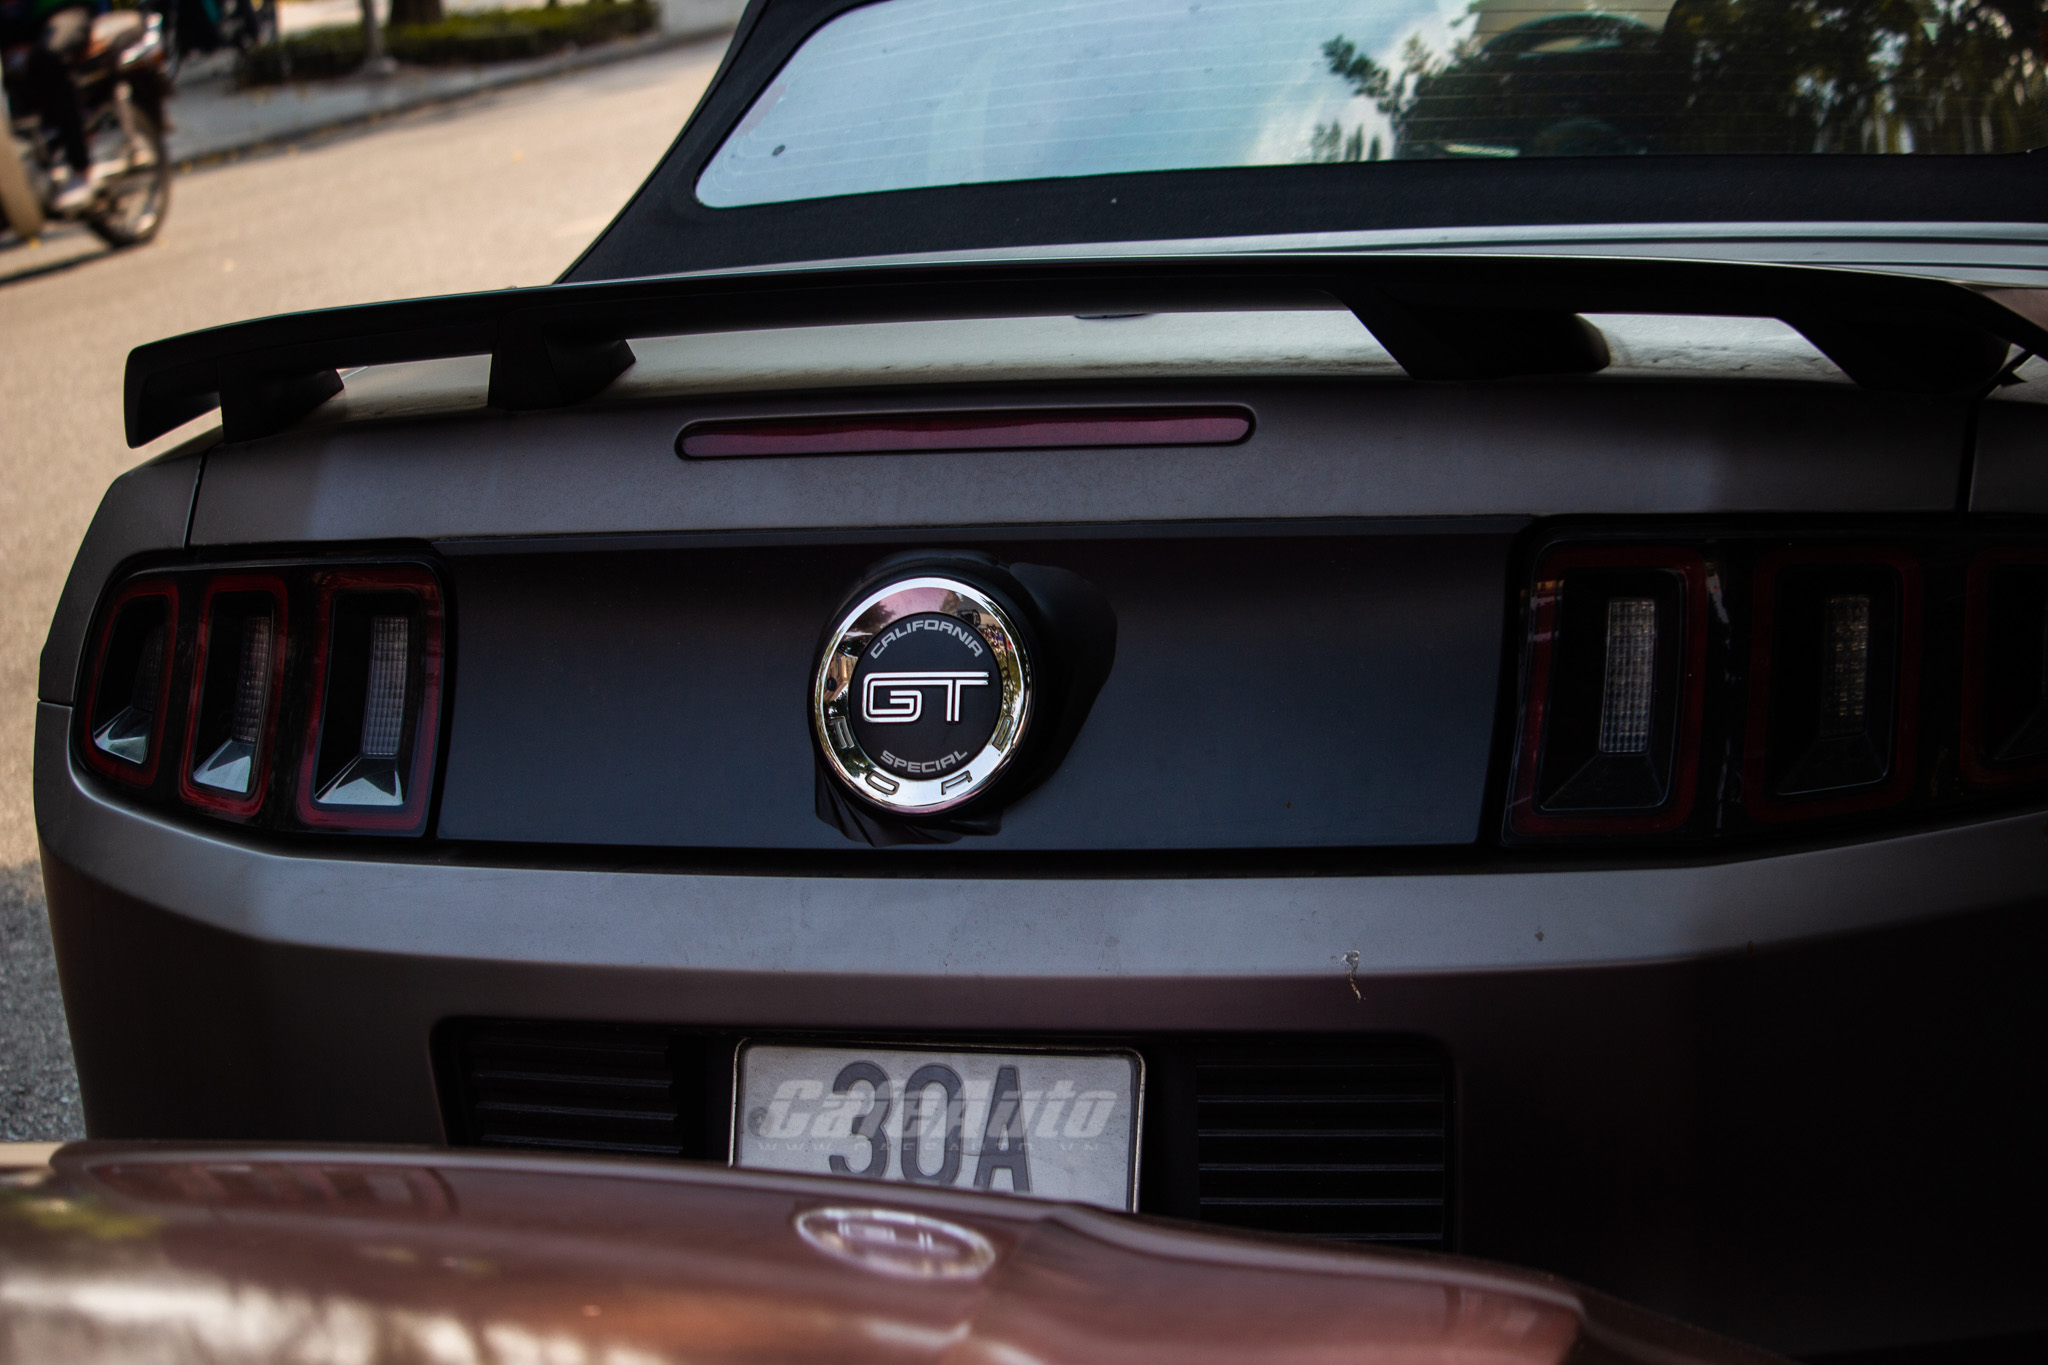 mustangGT-cafeautovn-11